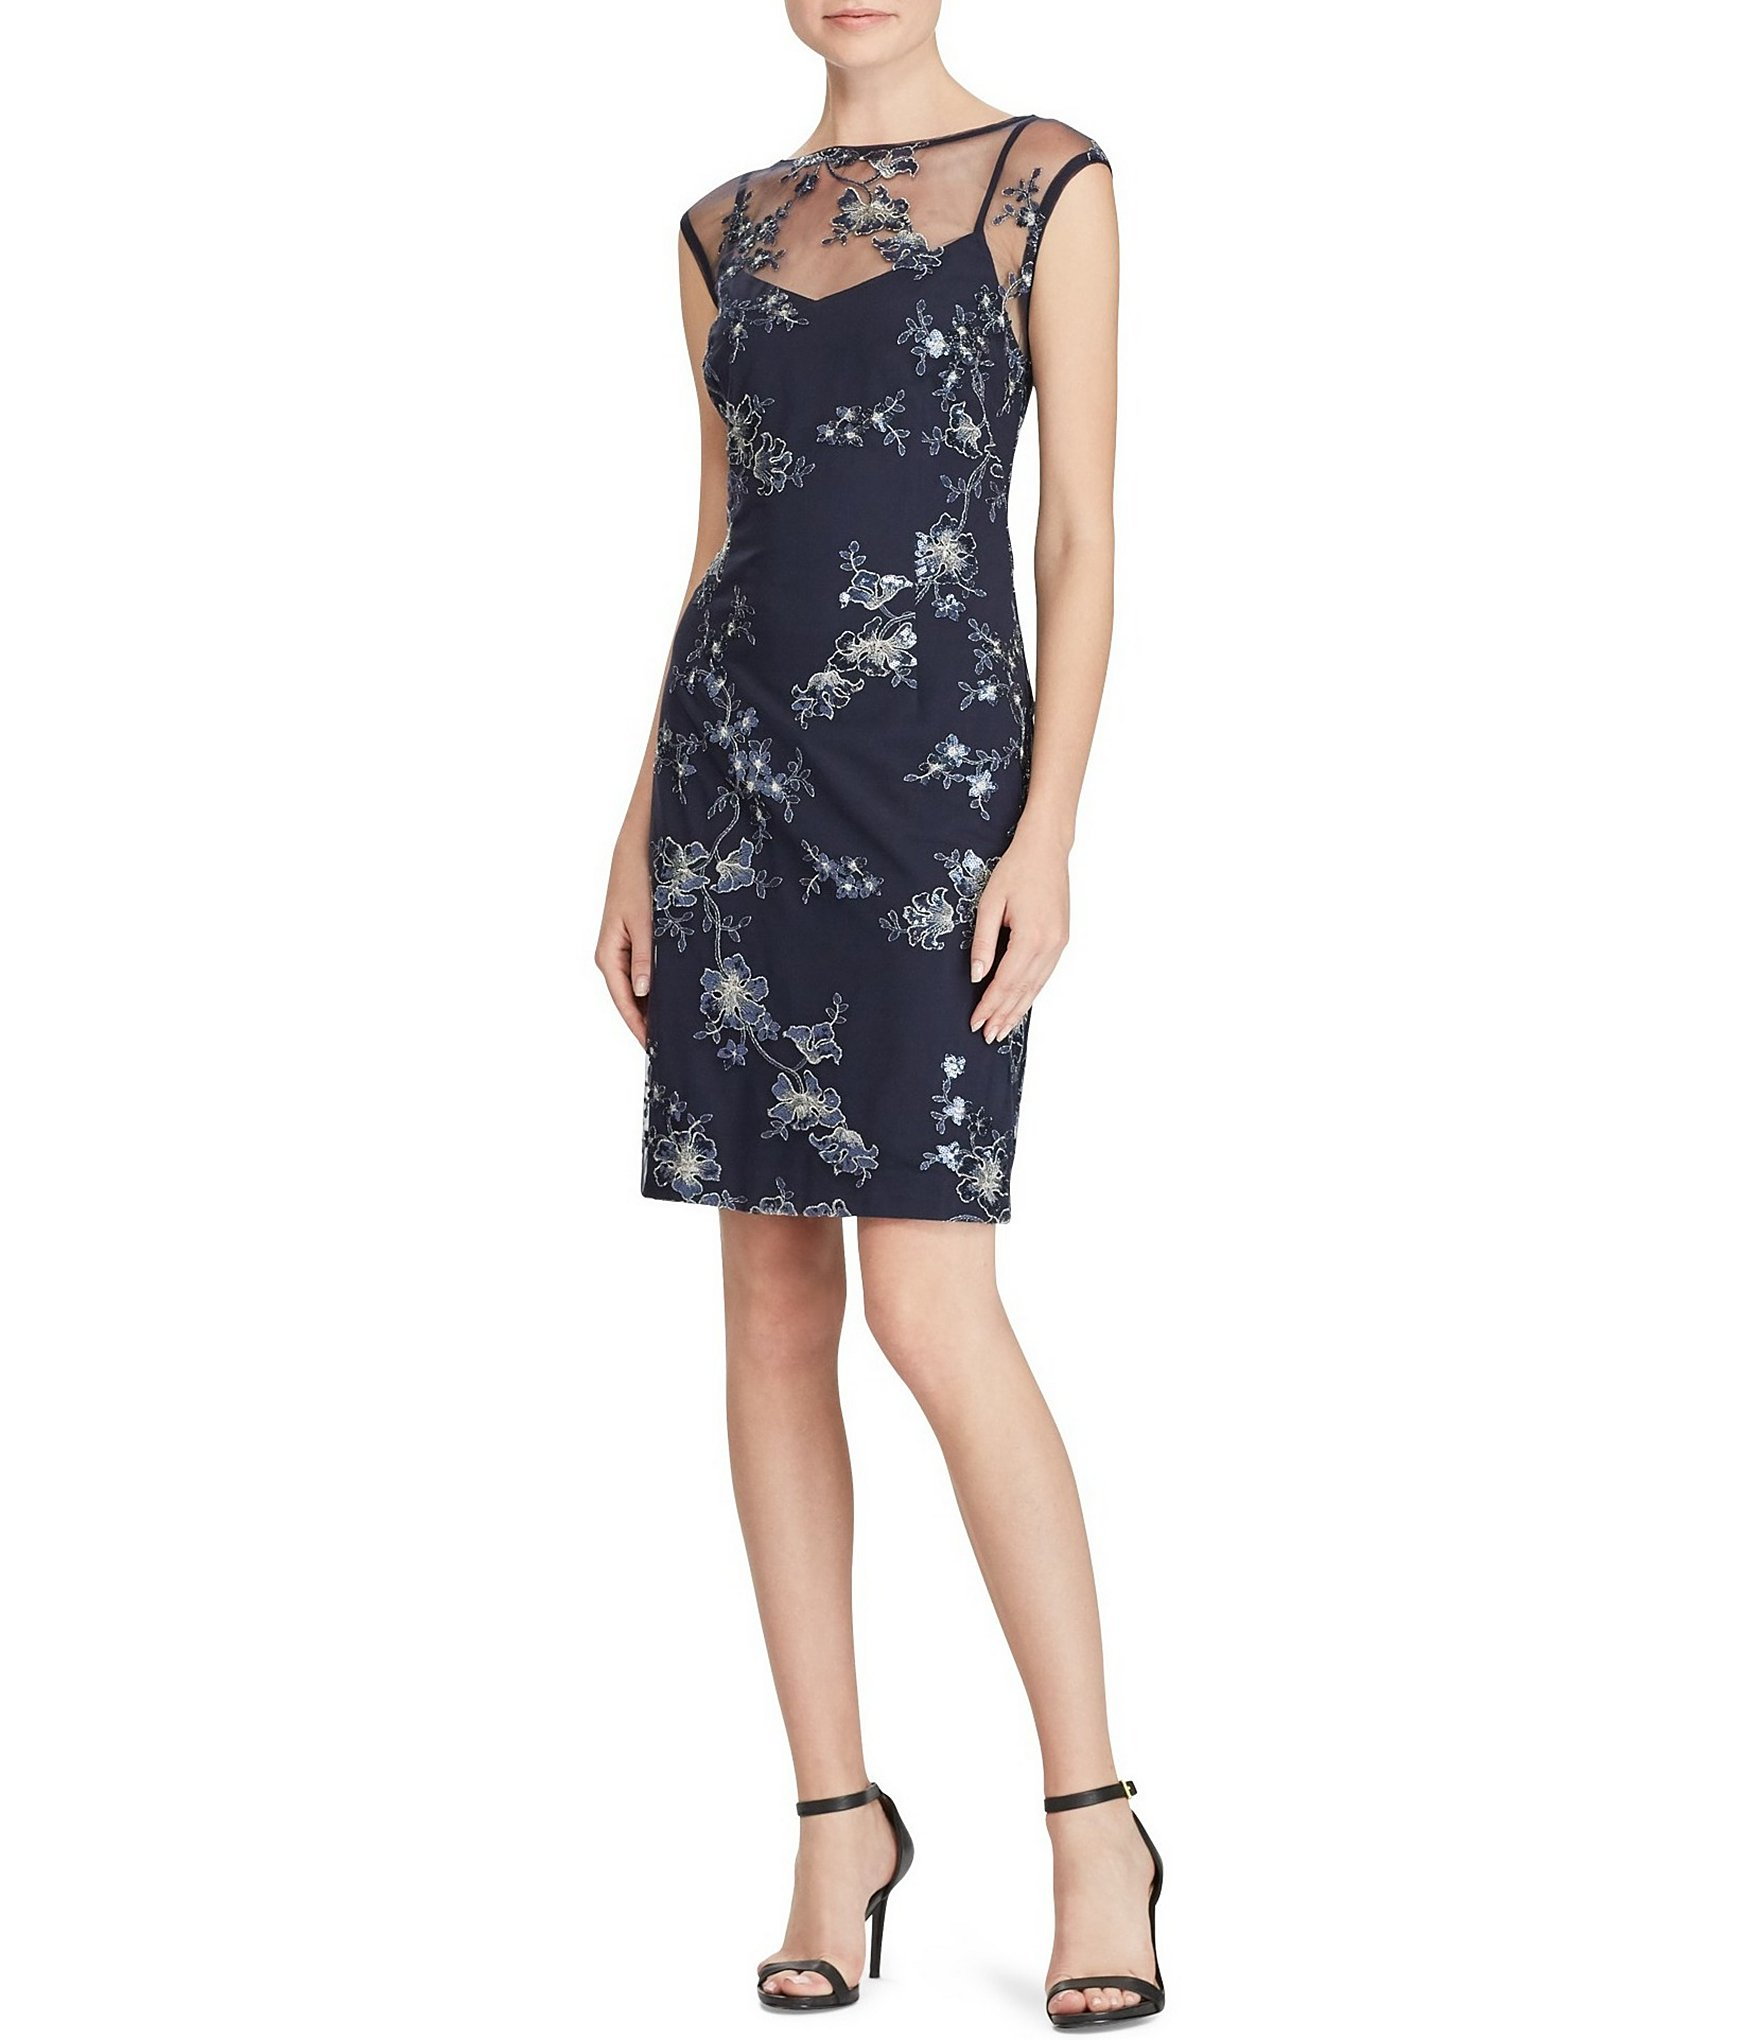 Shop for women casual Dillards dresses ralph lauren, cocktail dresses, formal dresses and special occasion dresses available in missy, plus and petites sizes Benefits of Dillards dresses ralph lauren The Dillards dresses ralph lauren have a nice price and great quality.